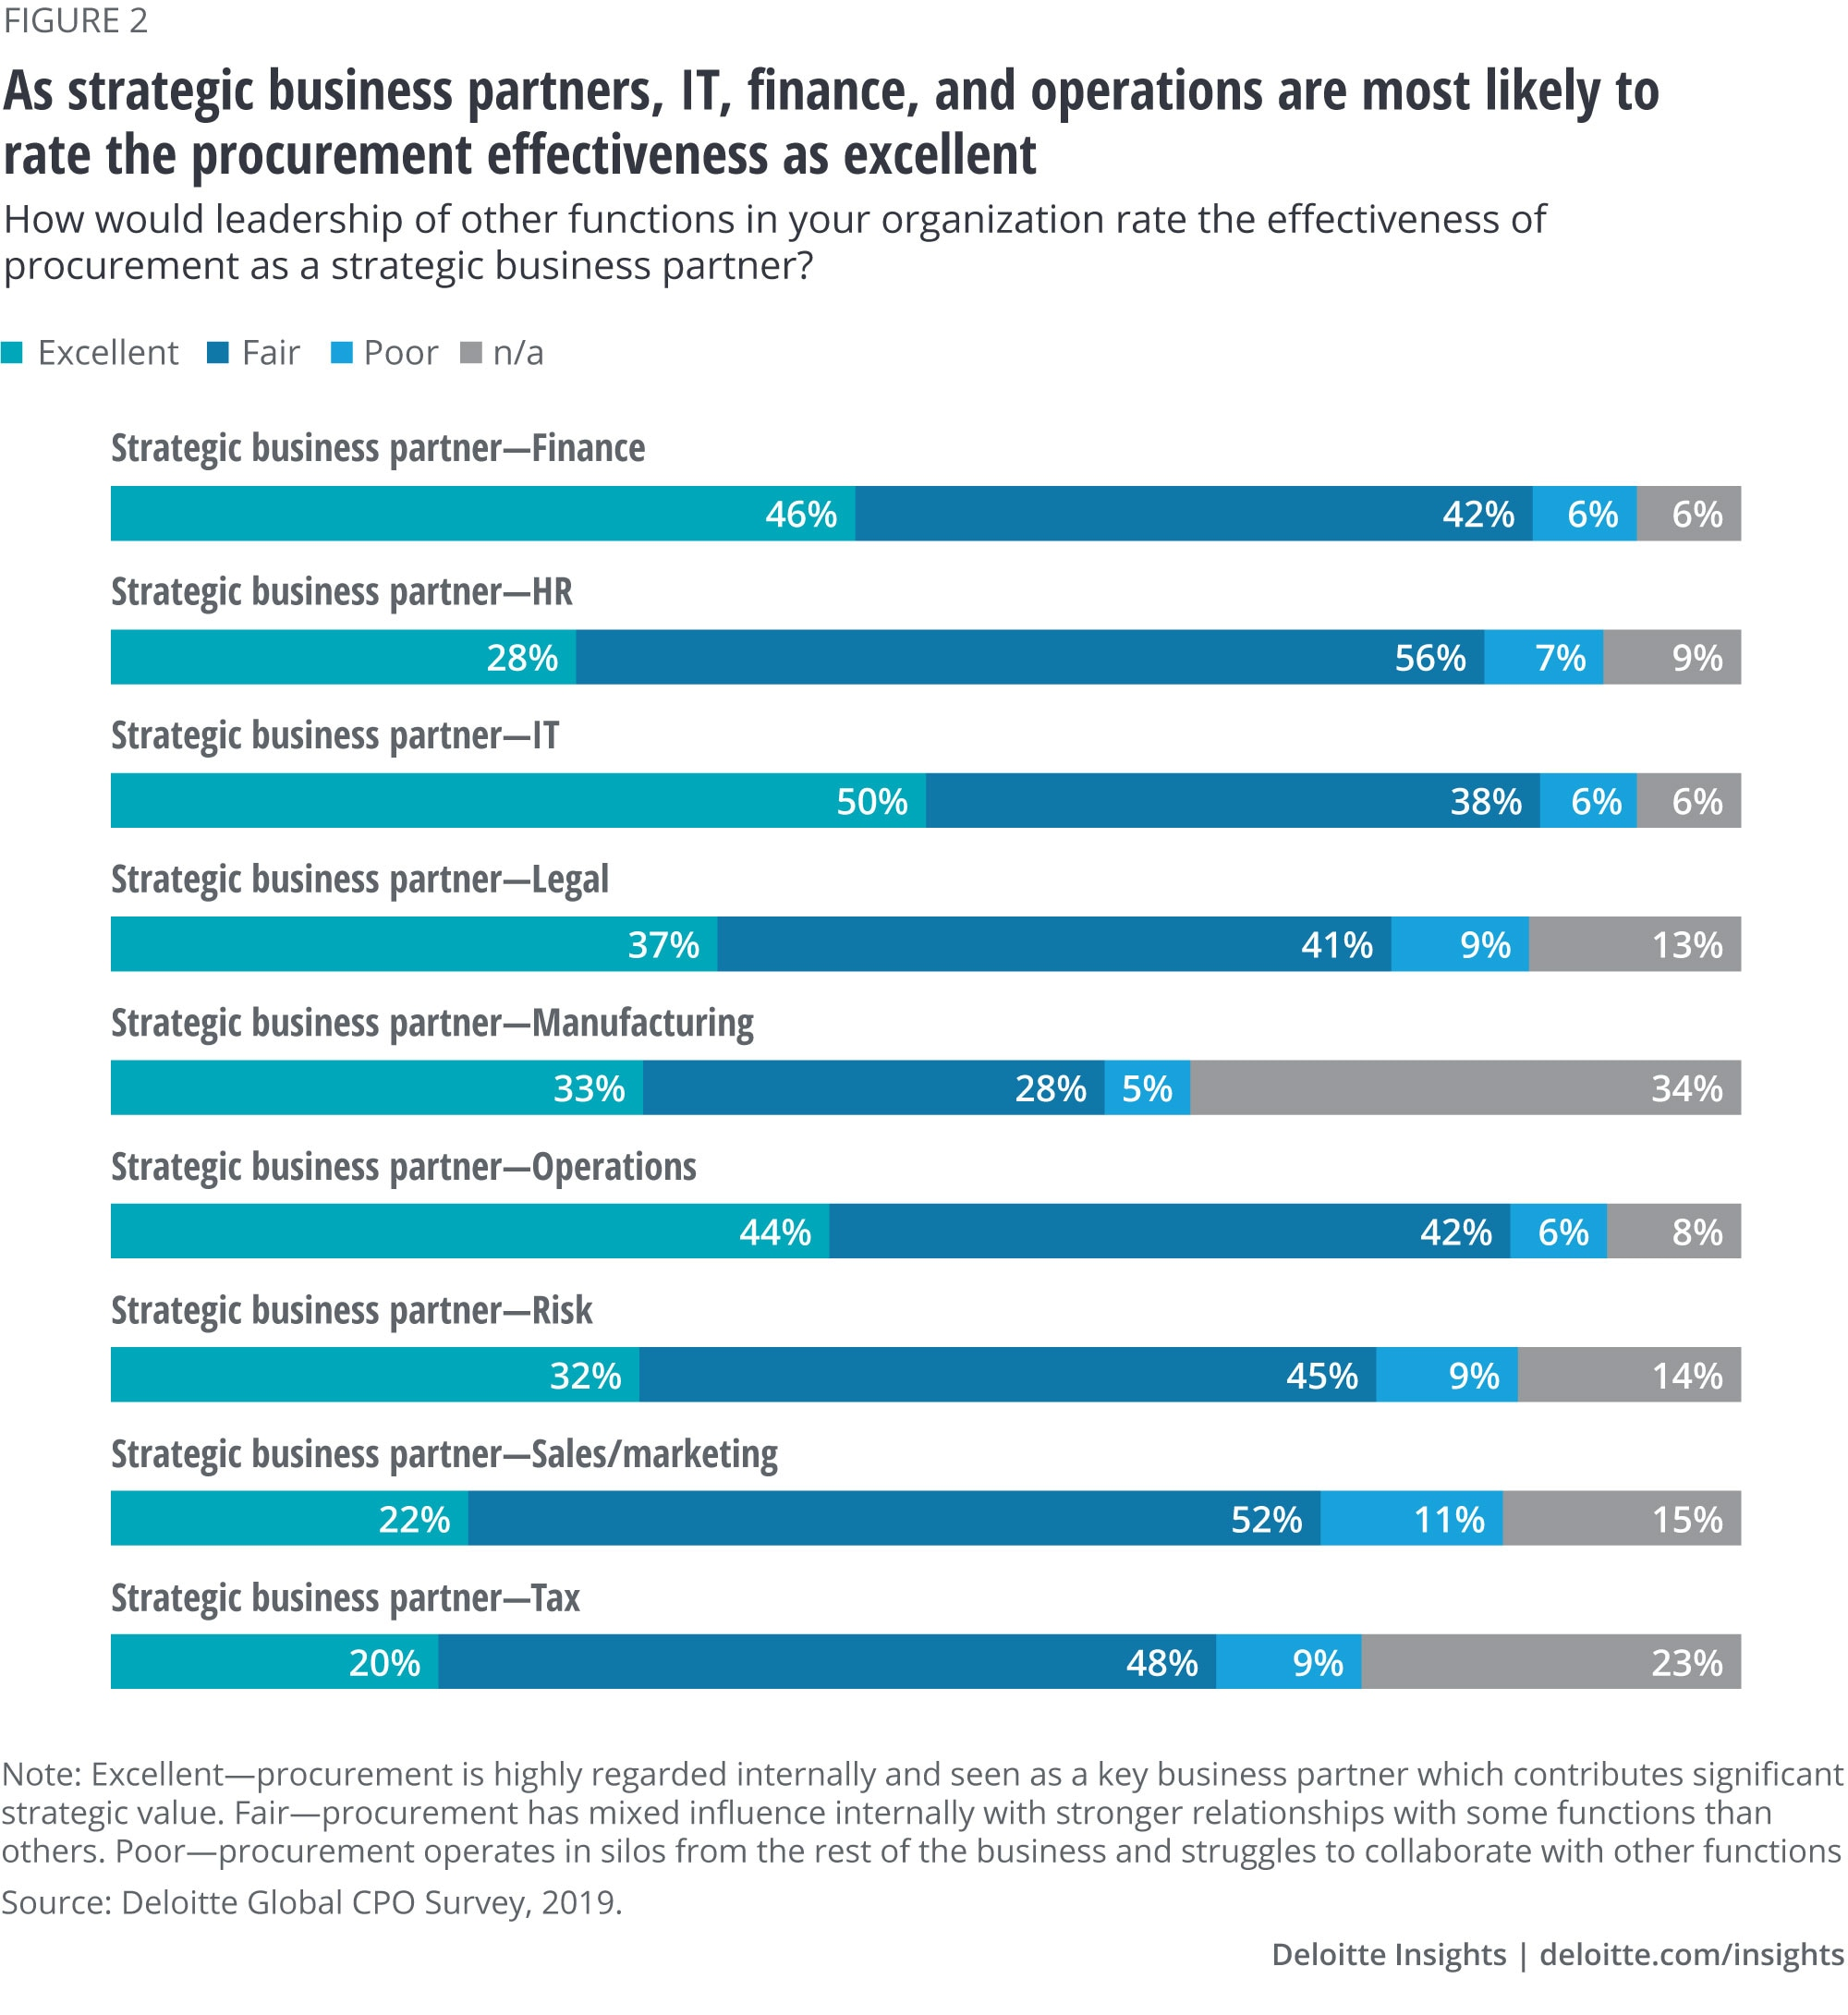 As strategic business partners, IT, finance, and operations are least likely to rate the procurement effectiveness as excellent